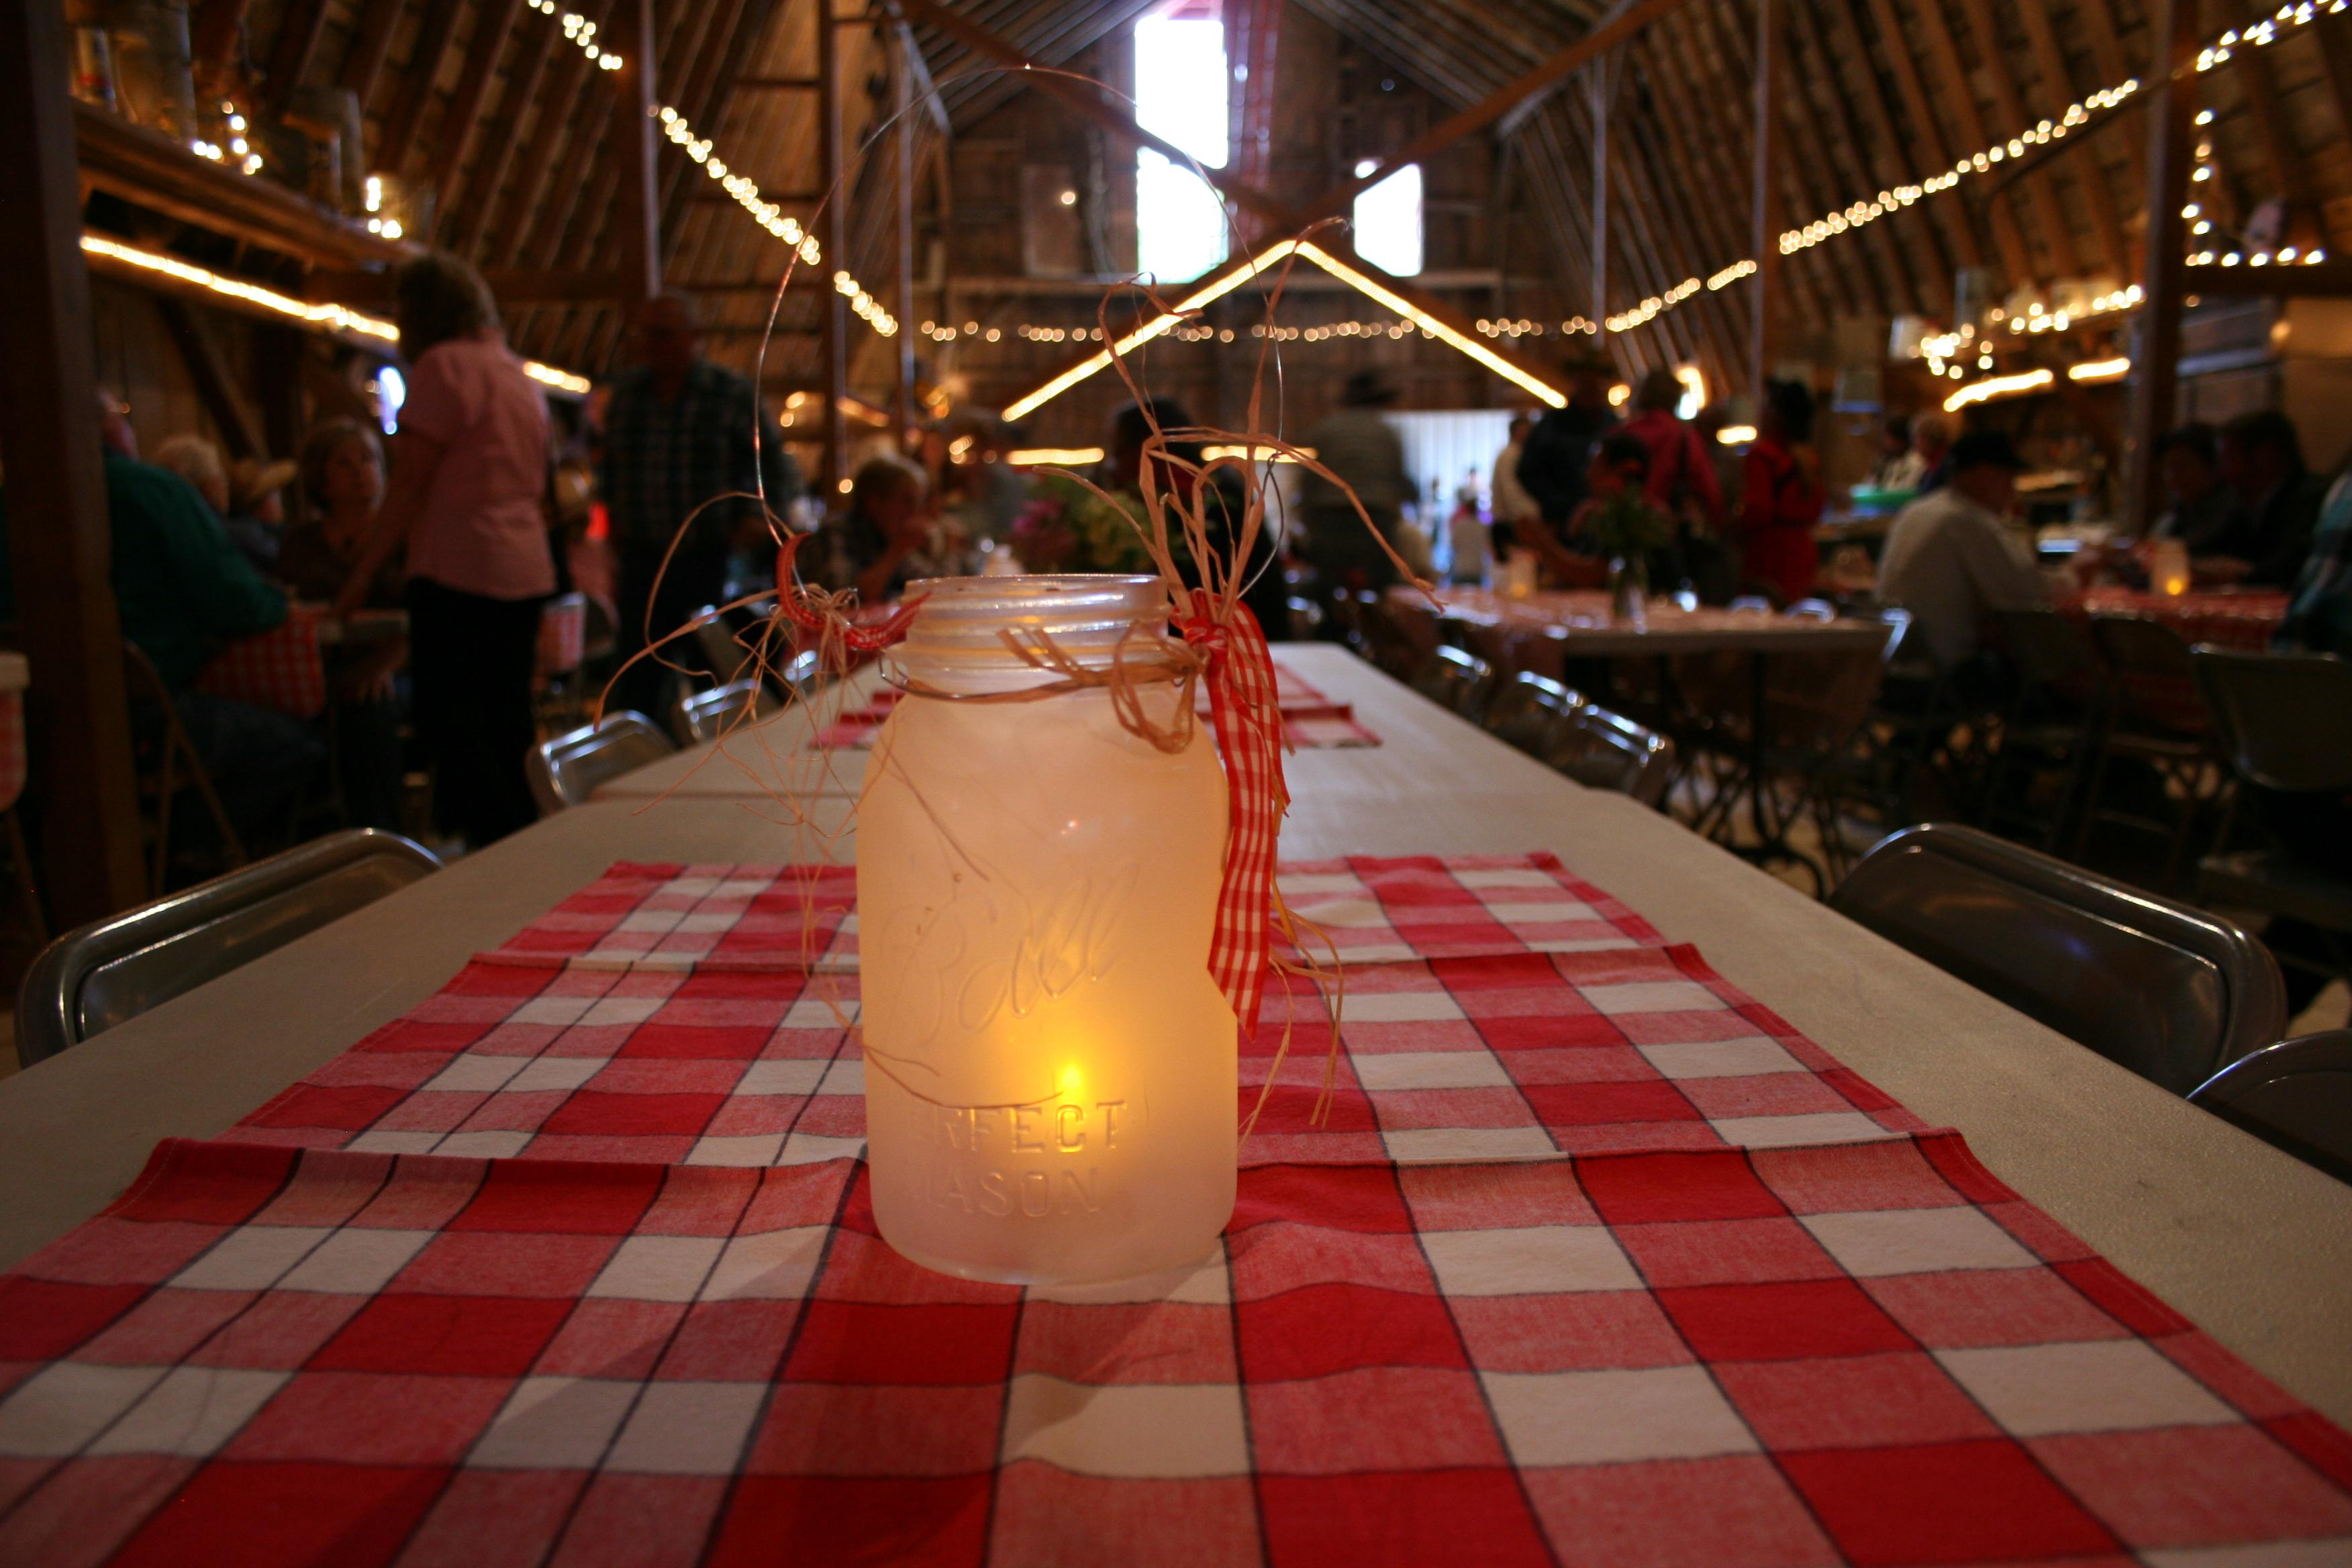 Harvest Barn Dance Celebrates Family Friends And